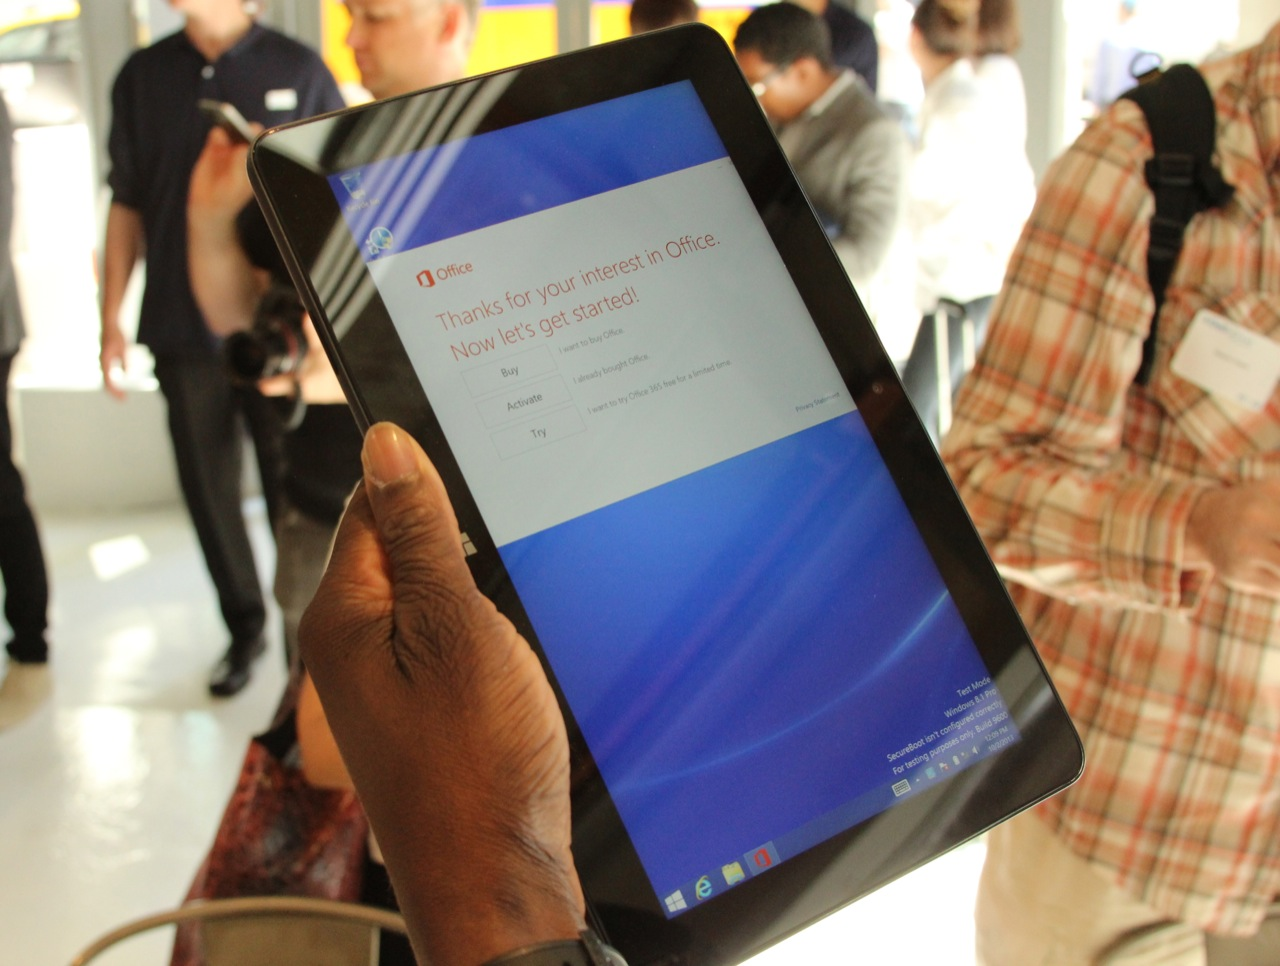 10-inch widescreen tablets: still not comfortable to hold in one hand.